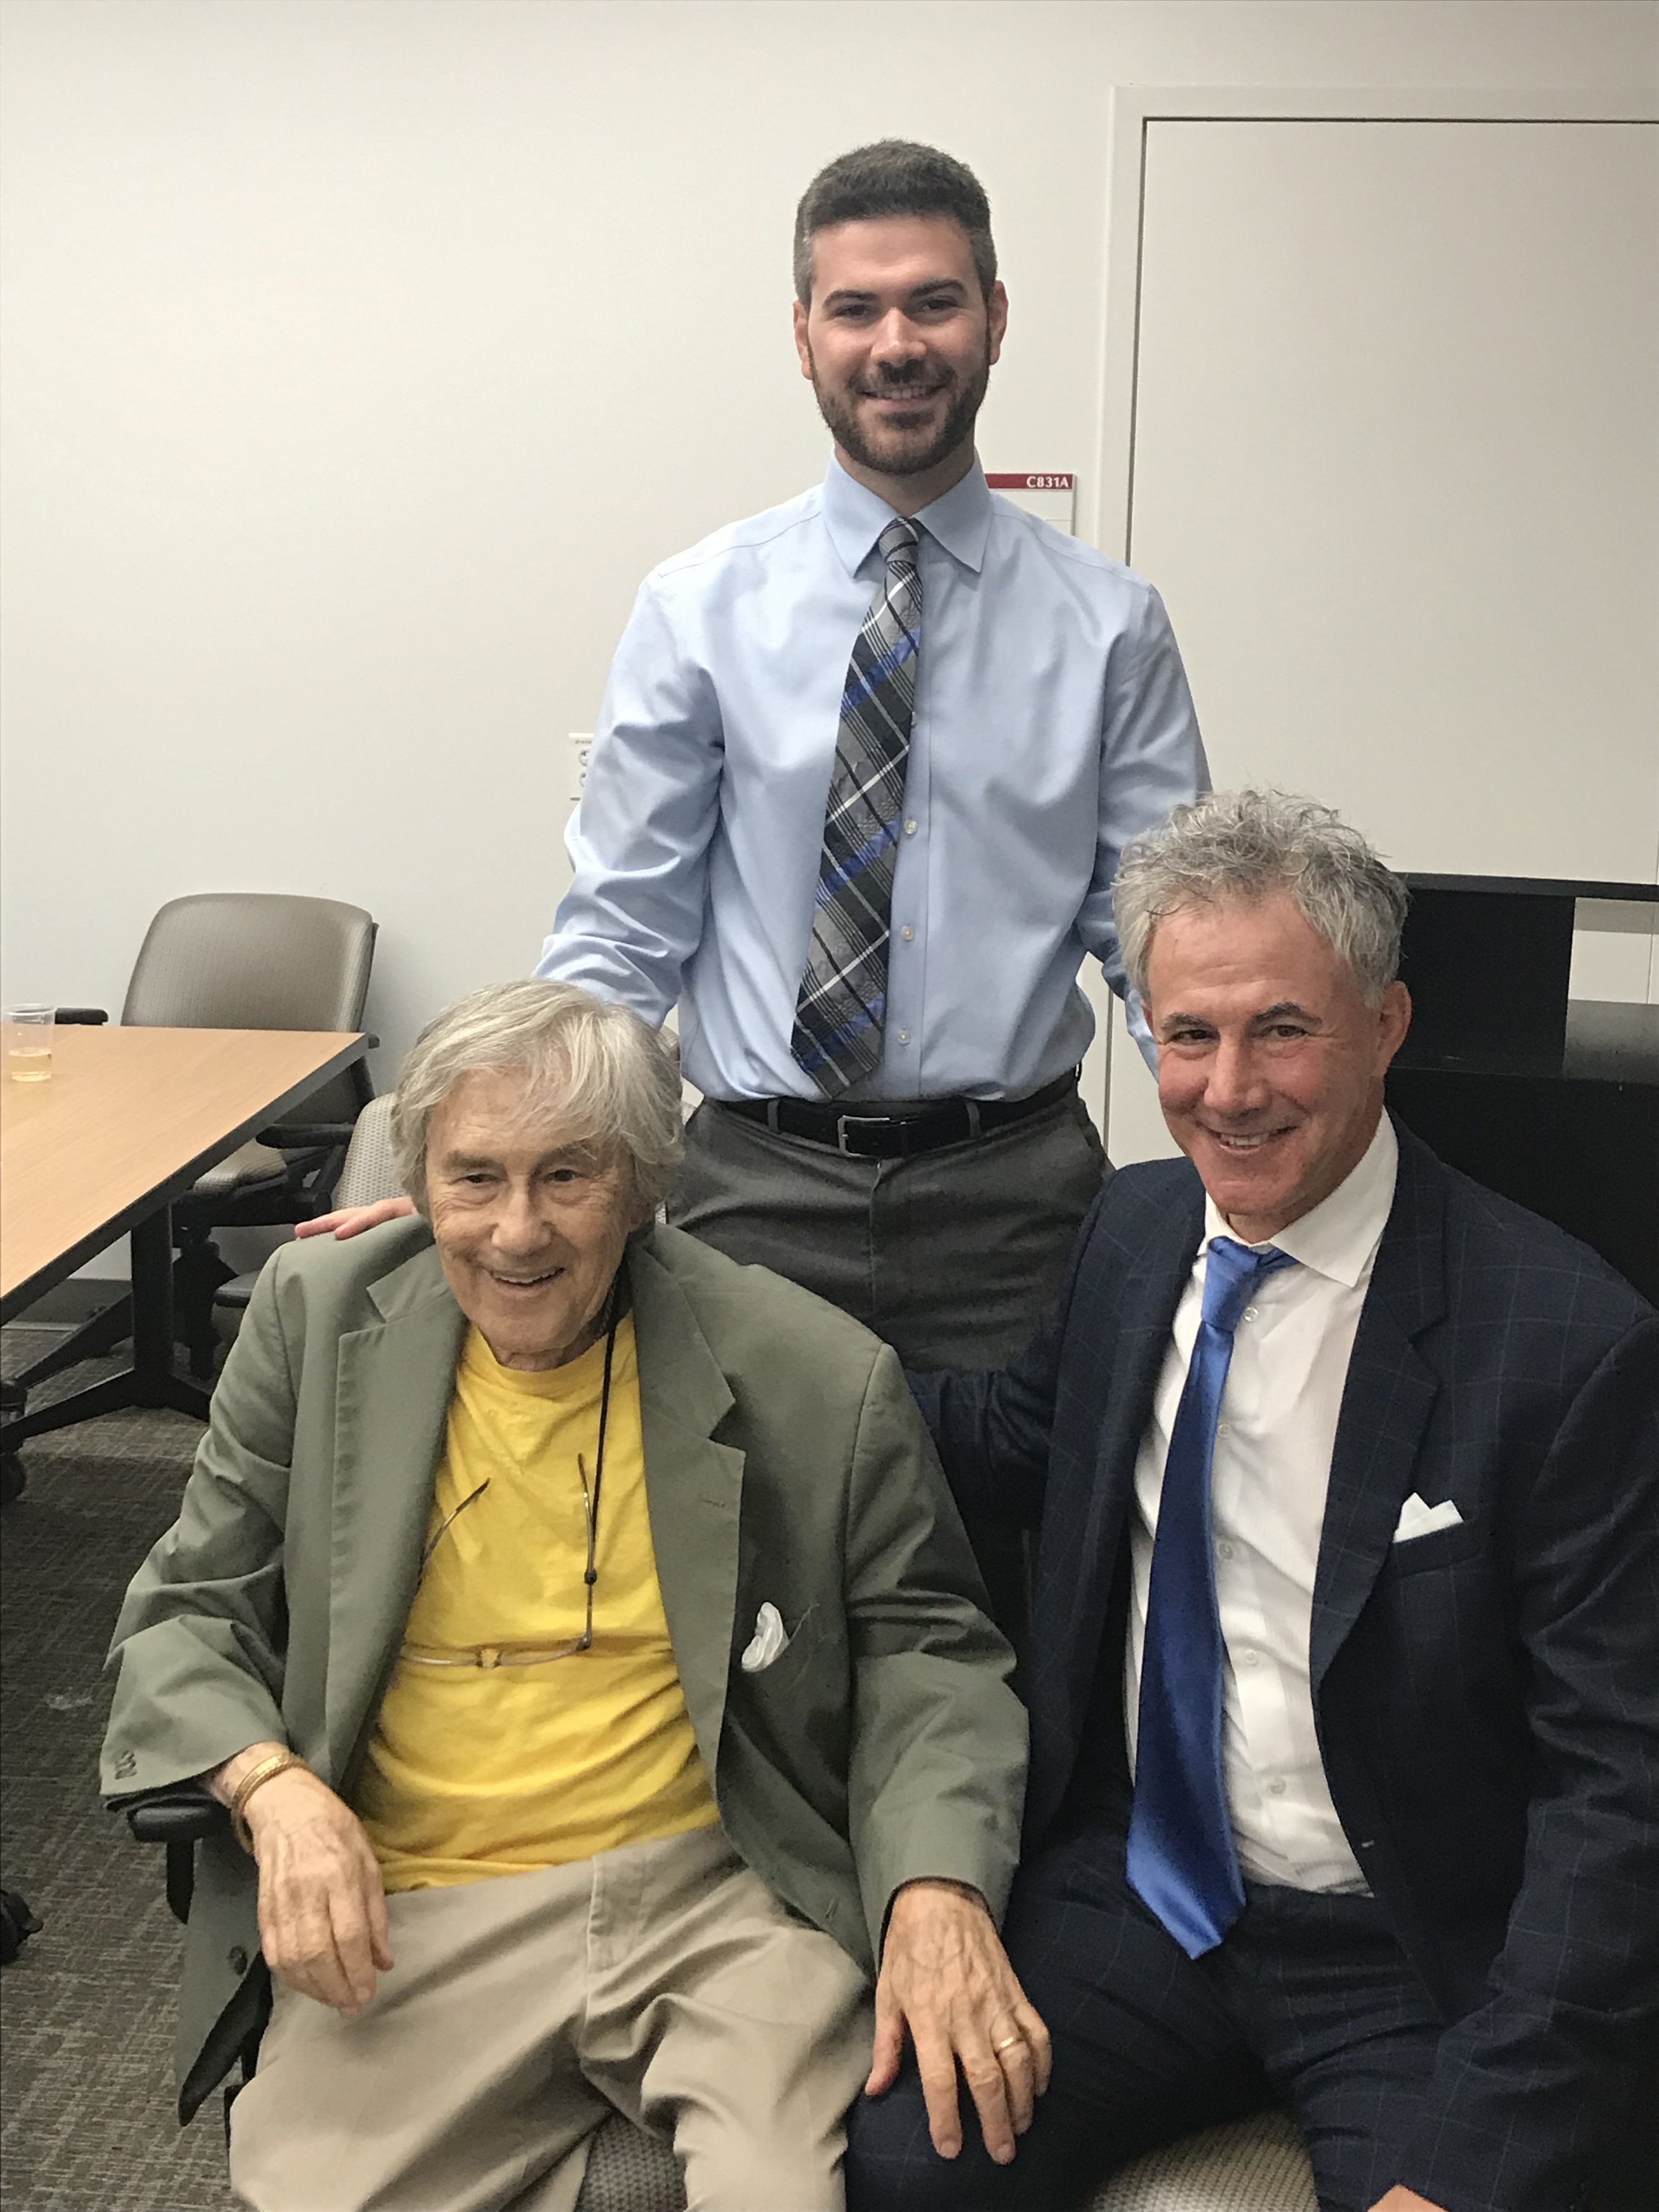 Three generations of Ph.D. microbiologists